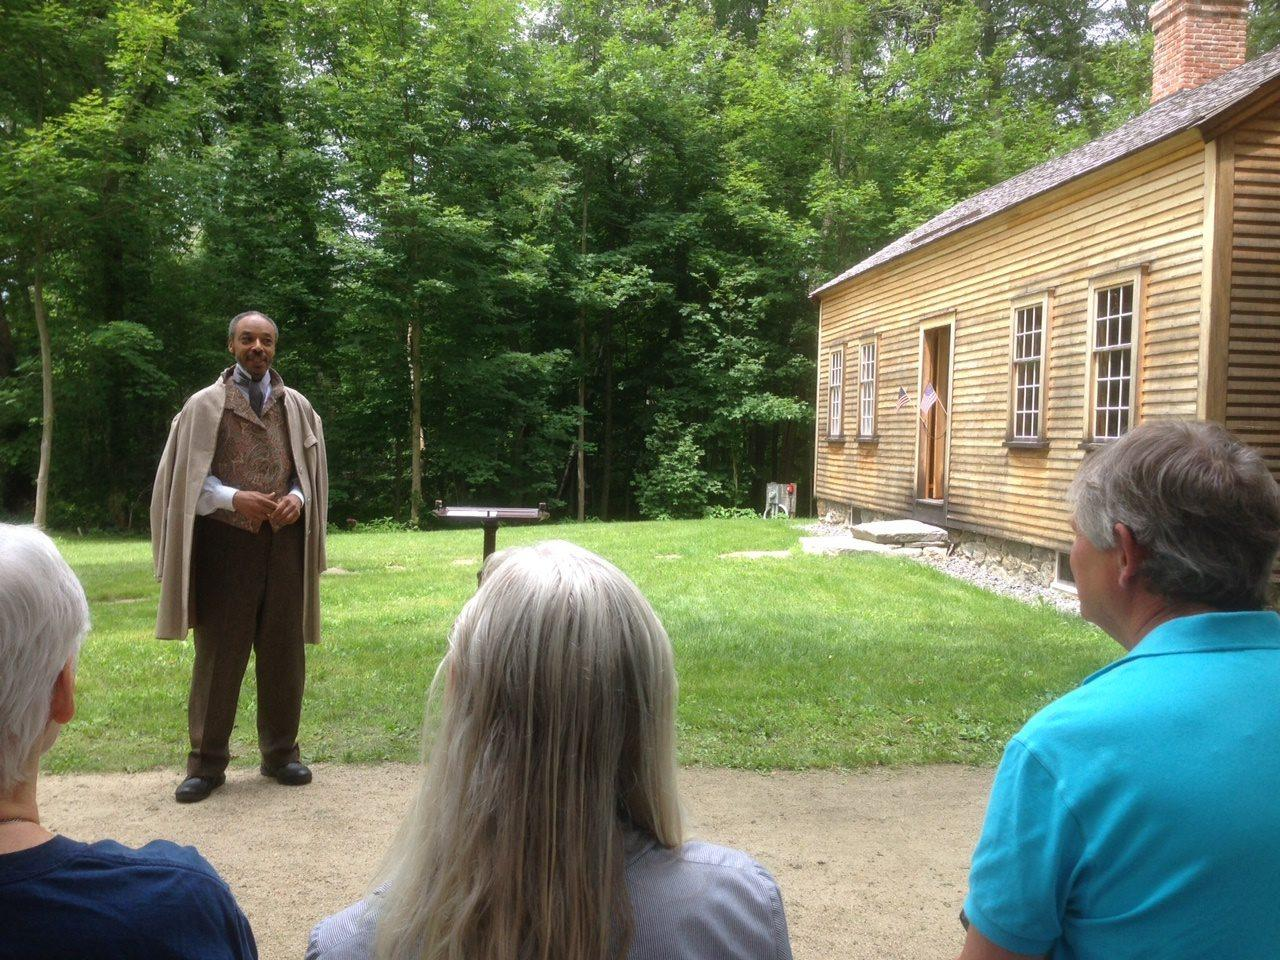 concord journal covers frederick douglass event the robbins house